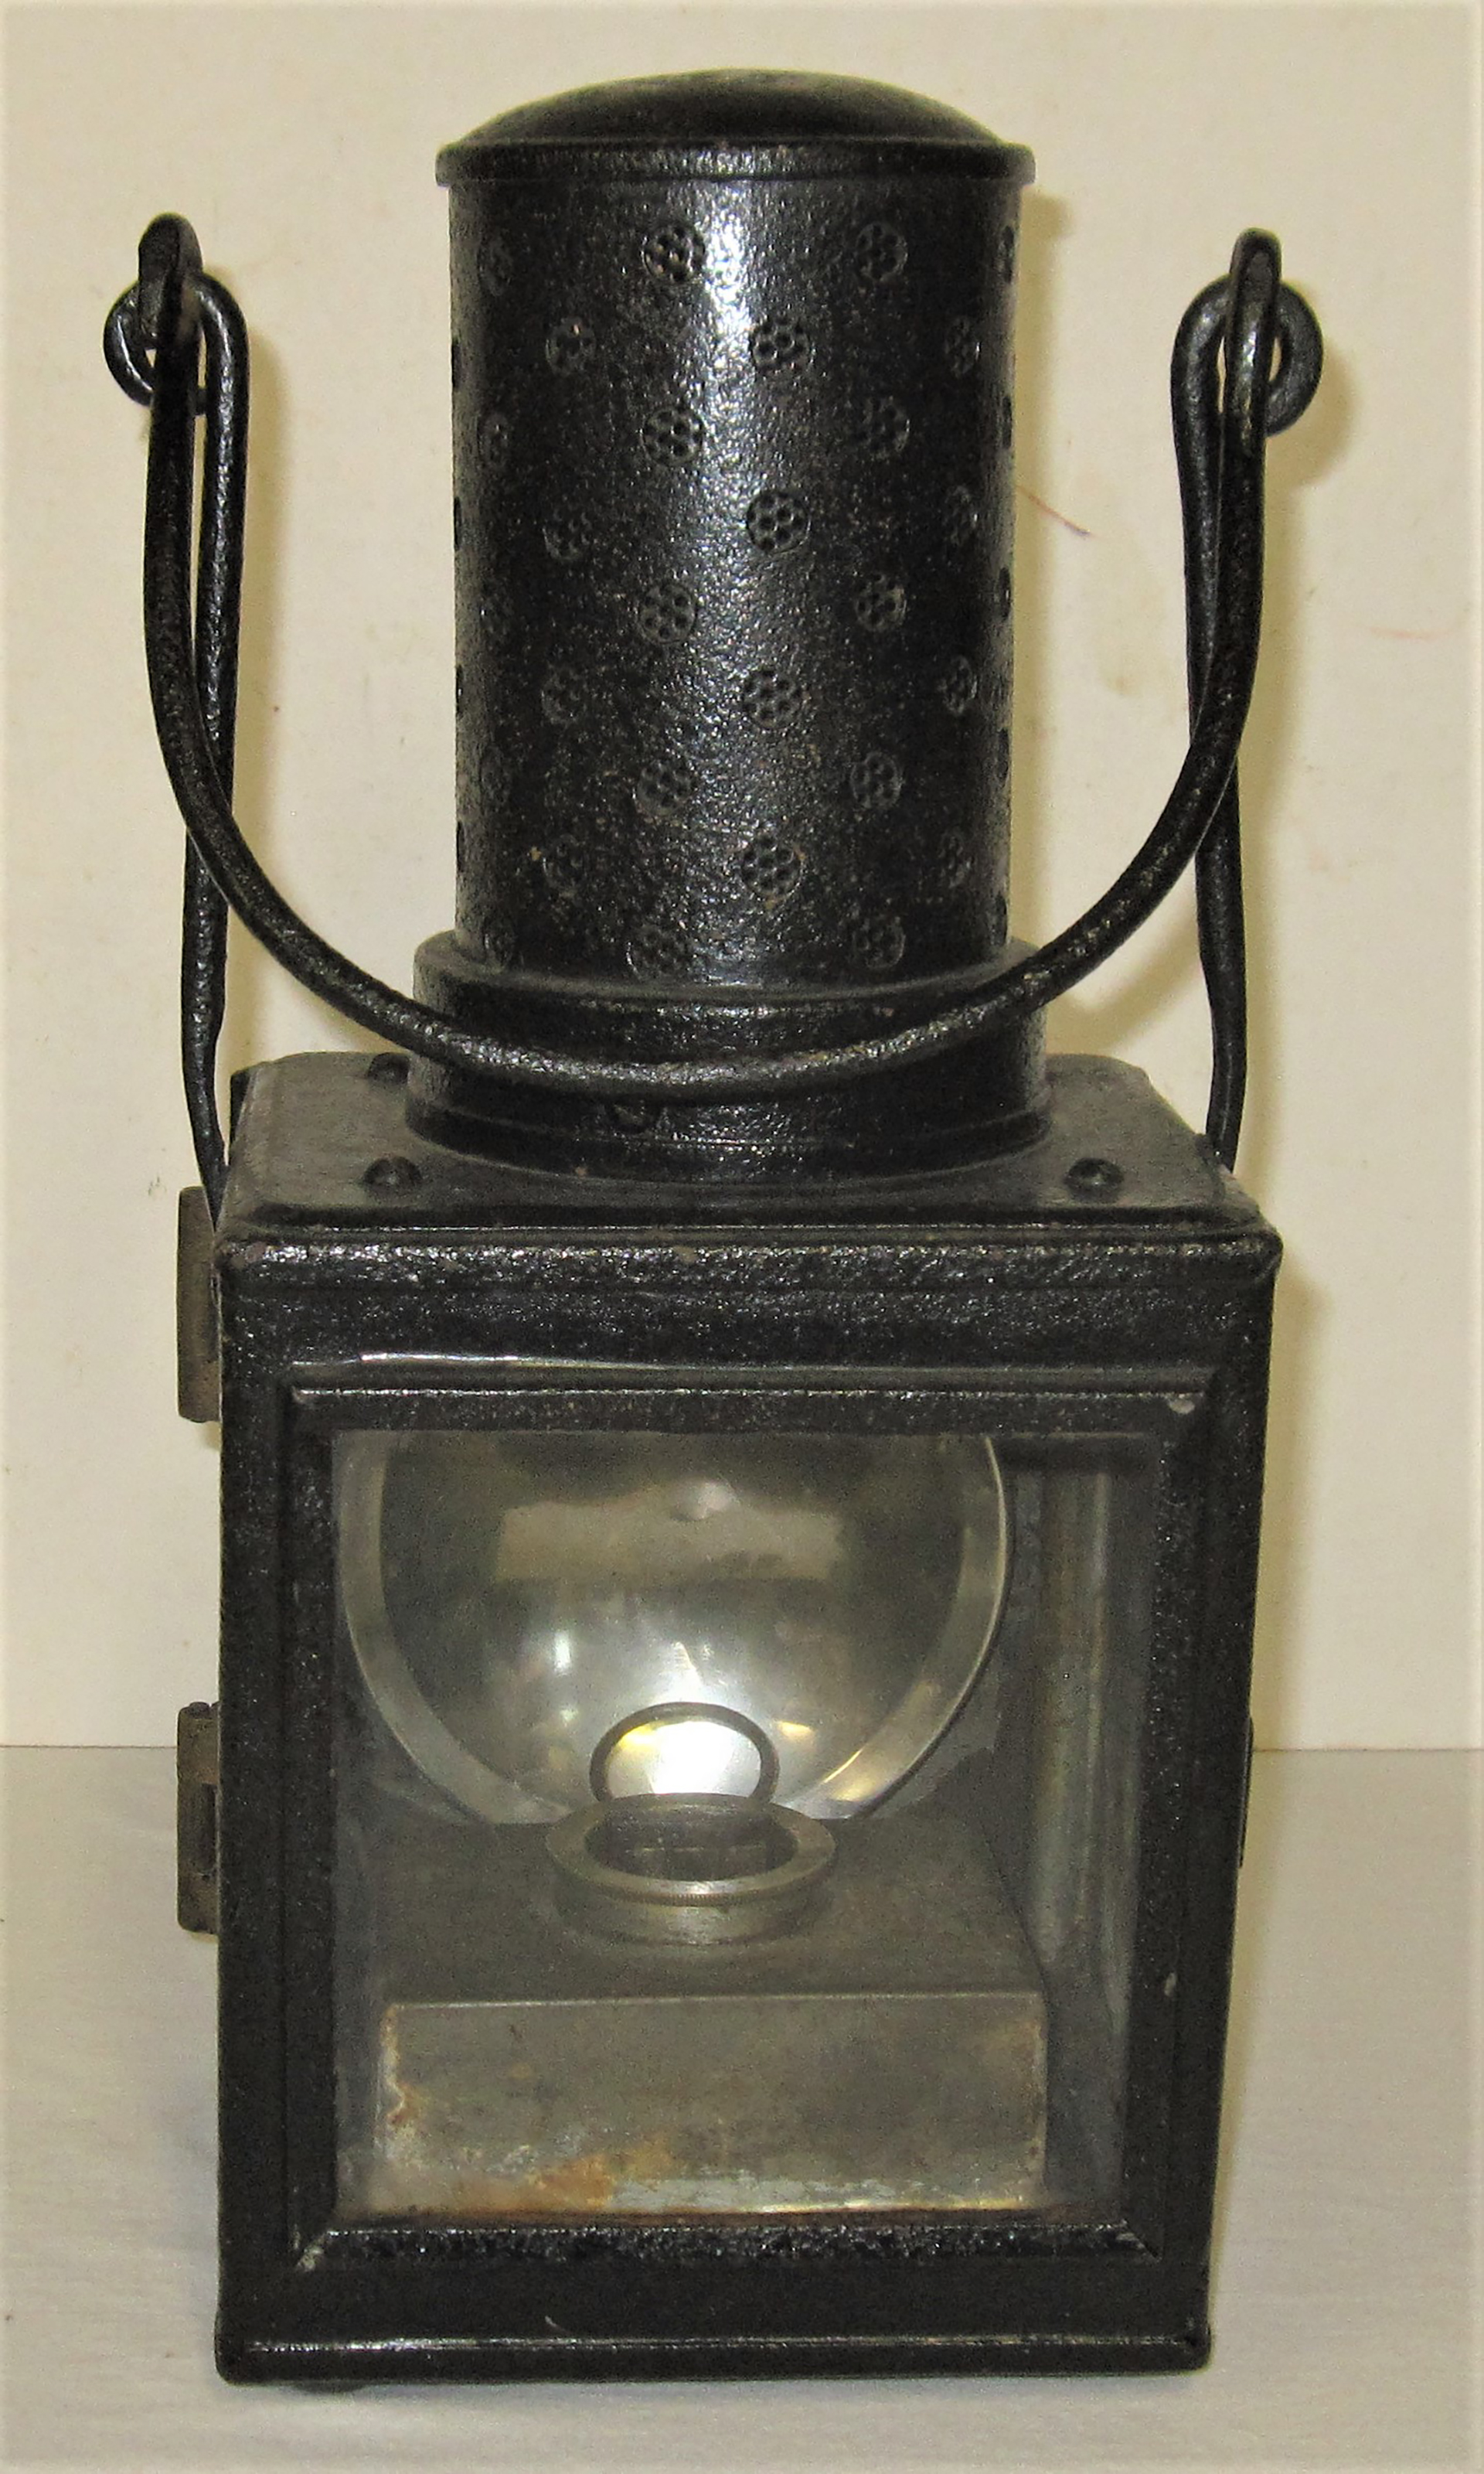 GWR explosion proof handlamp. Complete with rape oil burner and fittings. Stamped GWR on hinges,